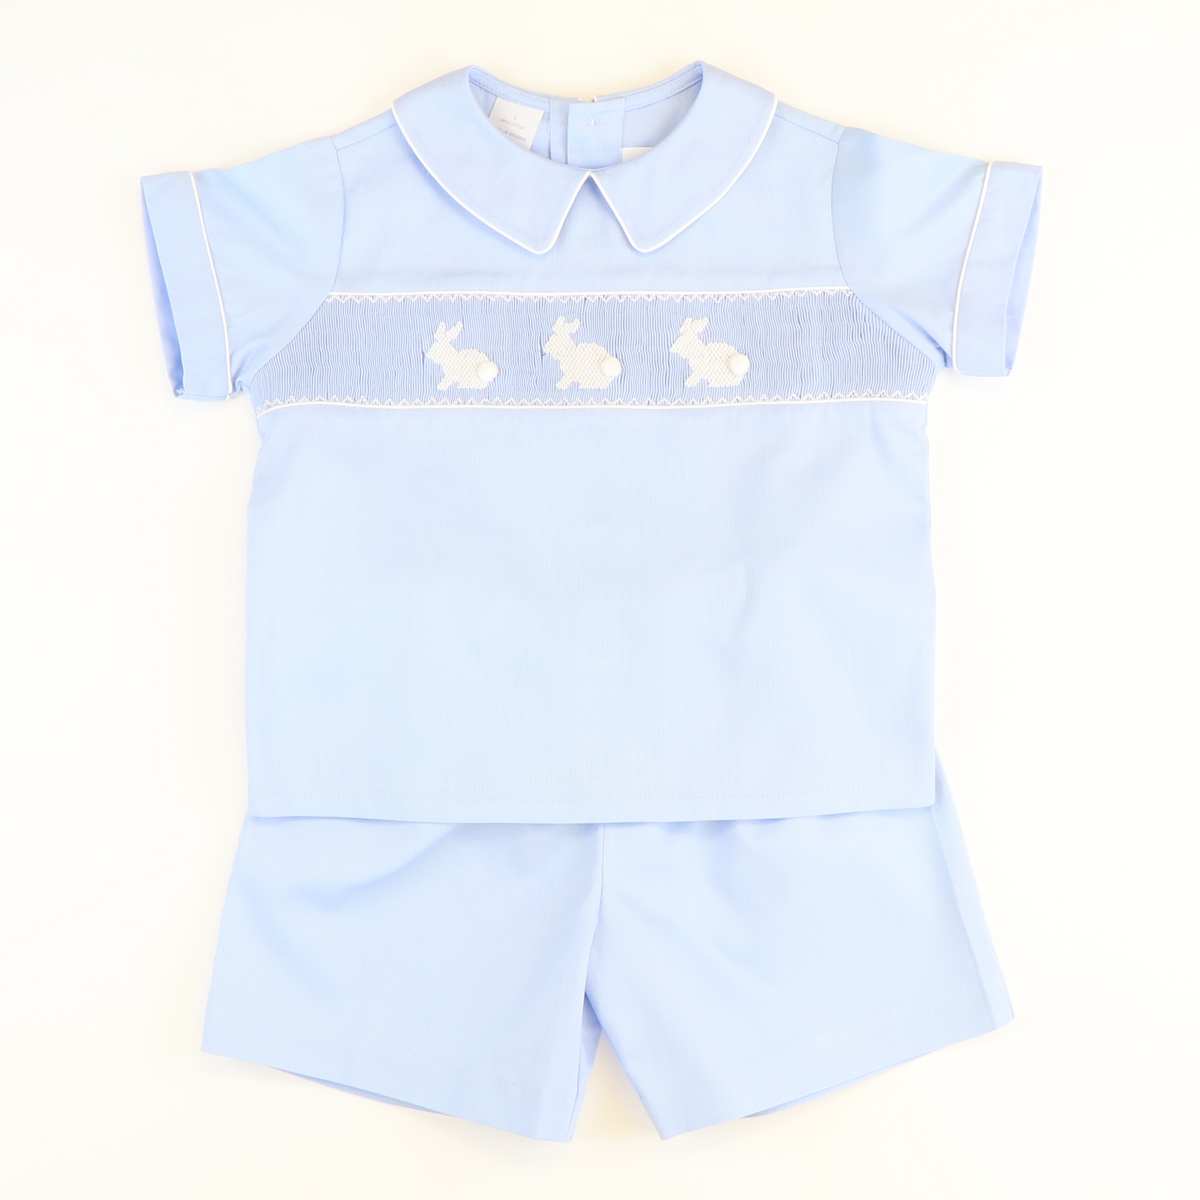 Smocked Bunny Silhouette Short Set - Light Blue Pique